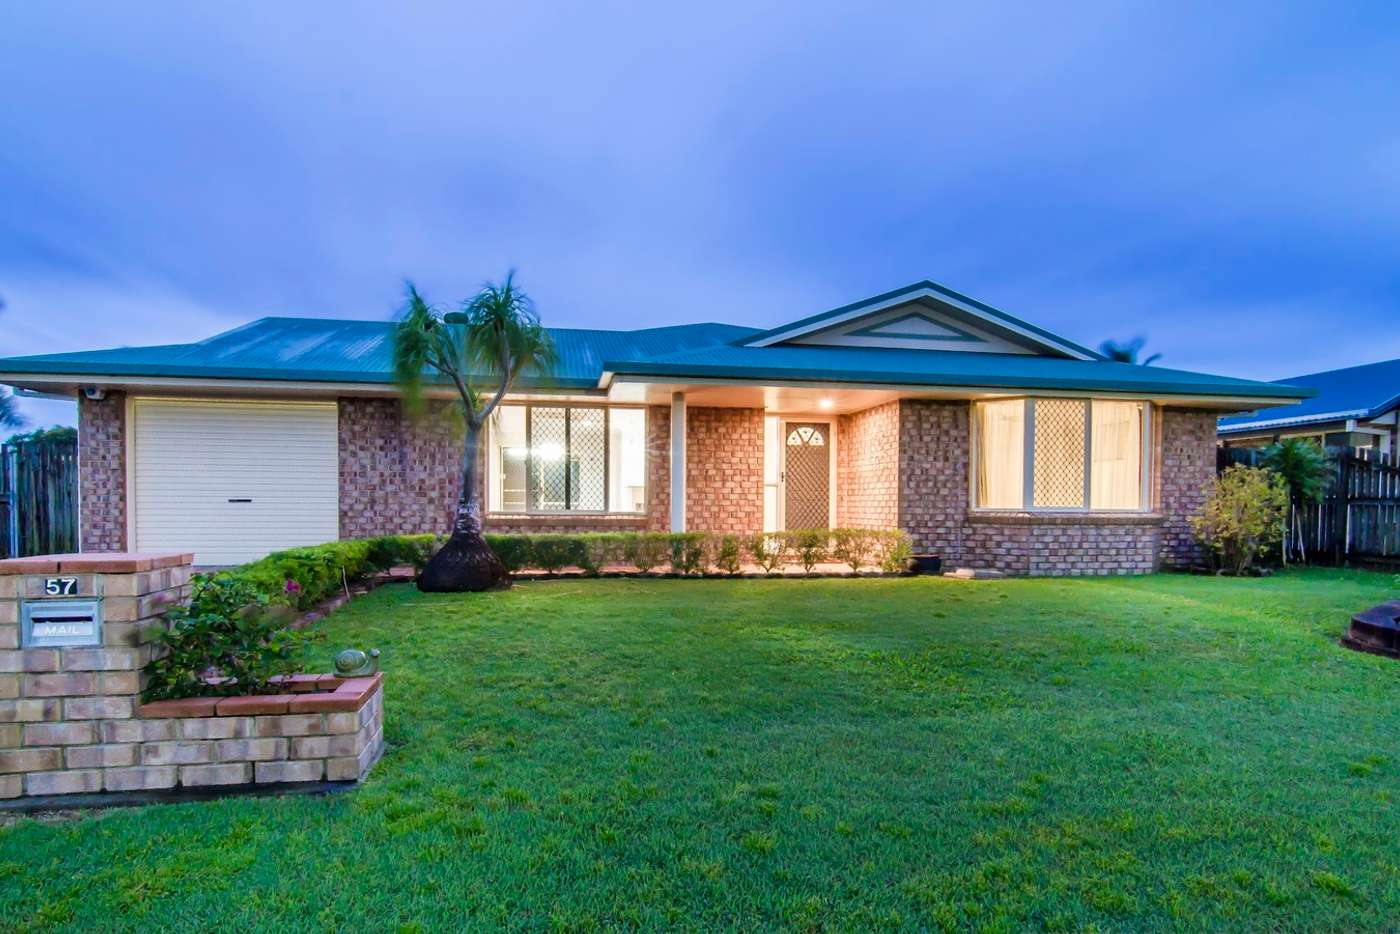 Main view of Homely house listing, 57 Ben Nevis Street, Beaconsfield QLD 4740